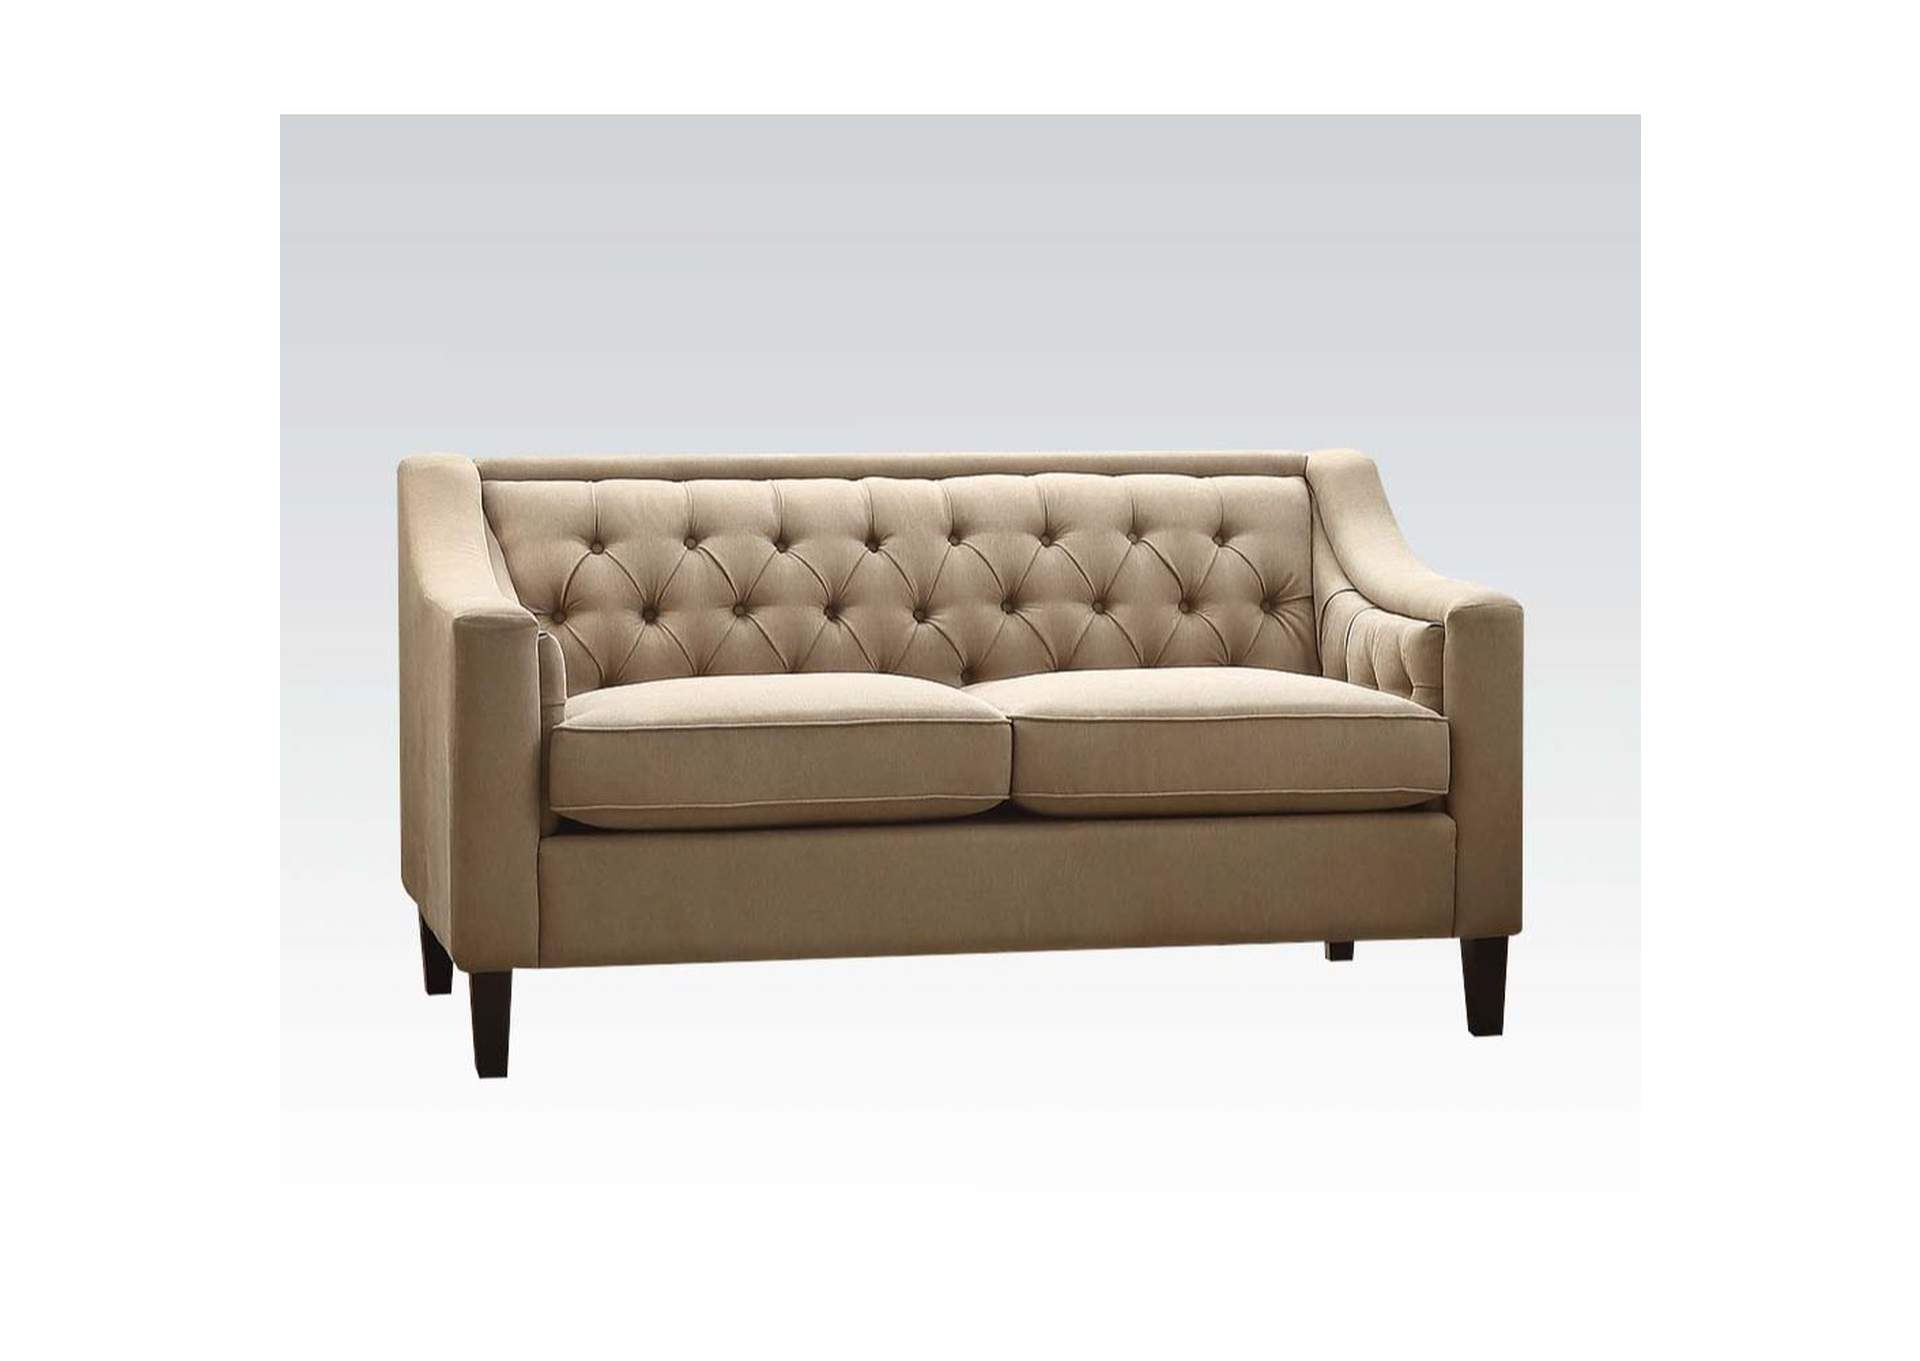 Suzanne Beige Fabric Loveseat,Acme